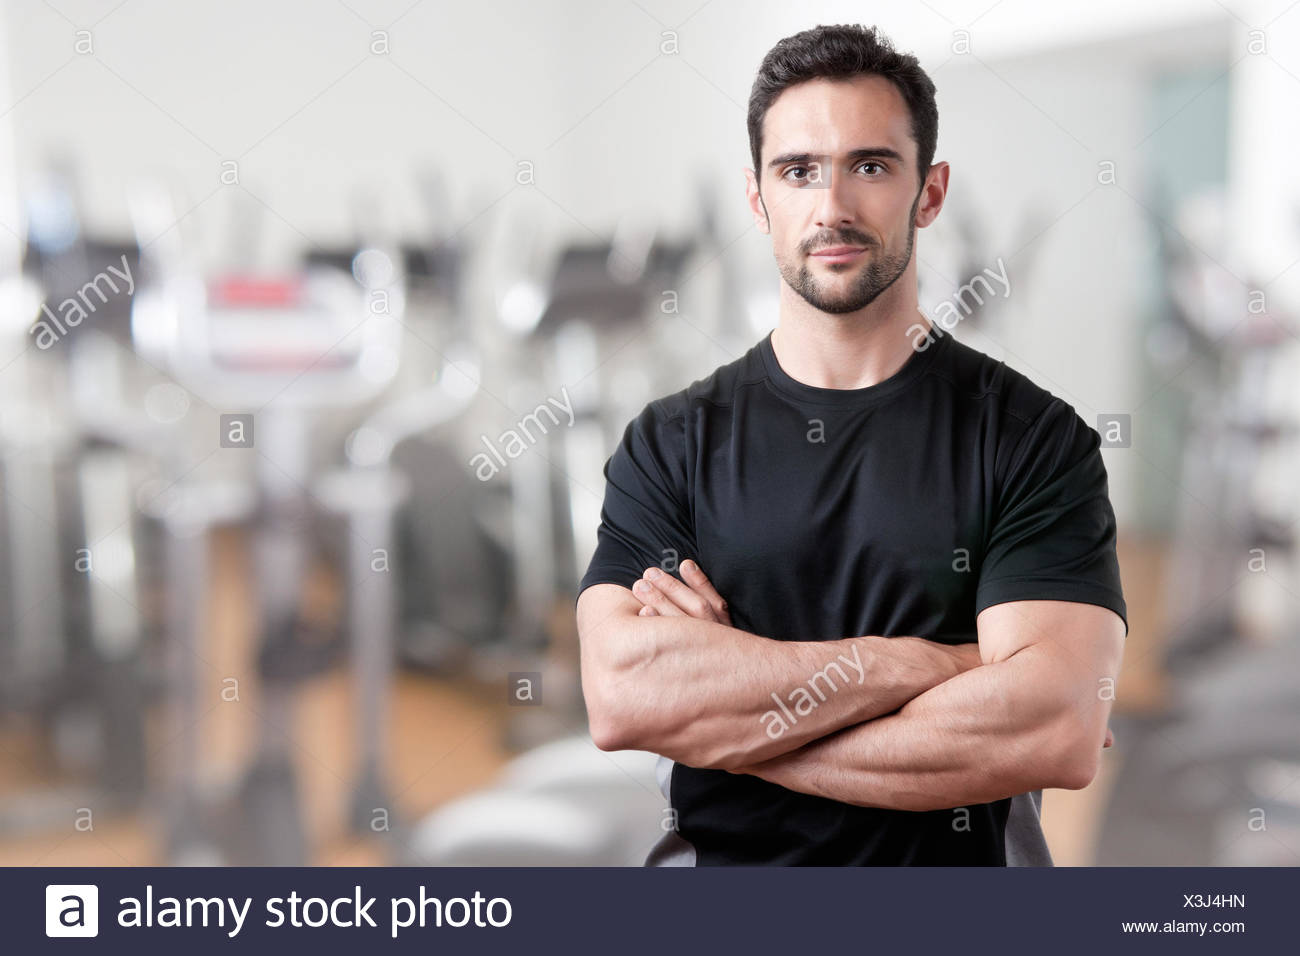 Personal Trainer - Stock Image